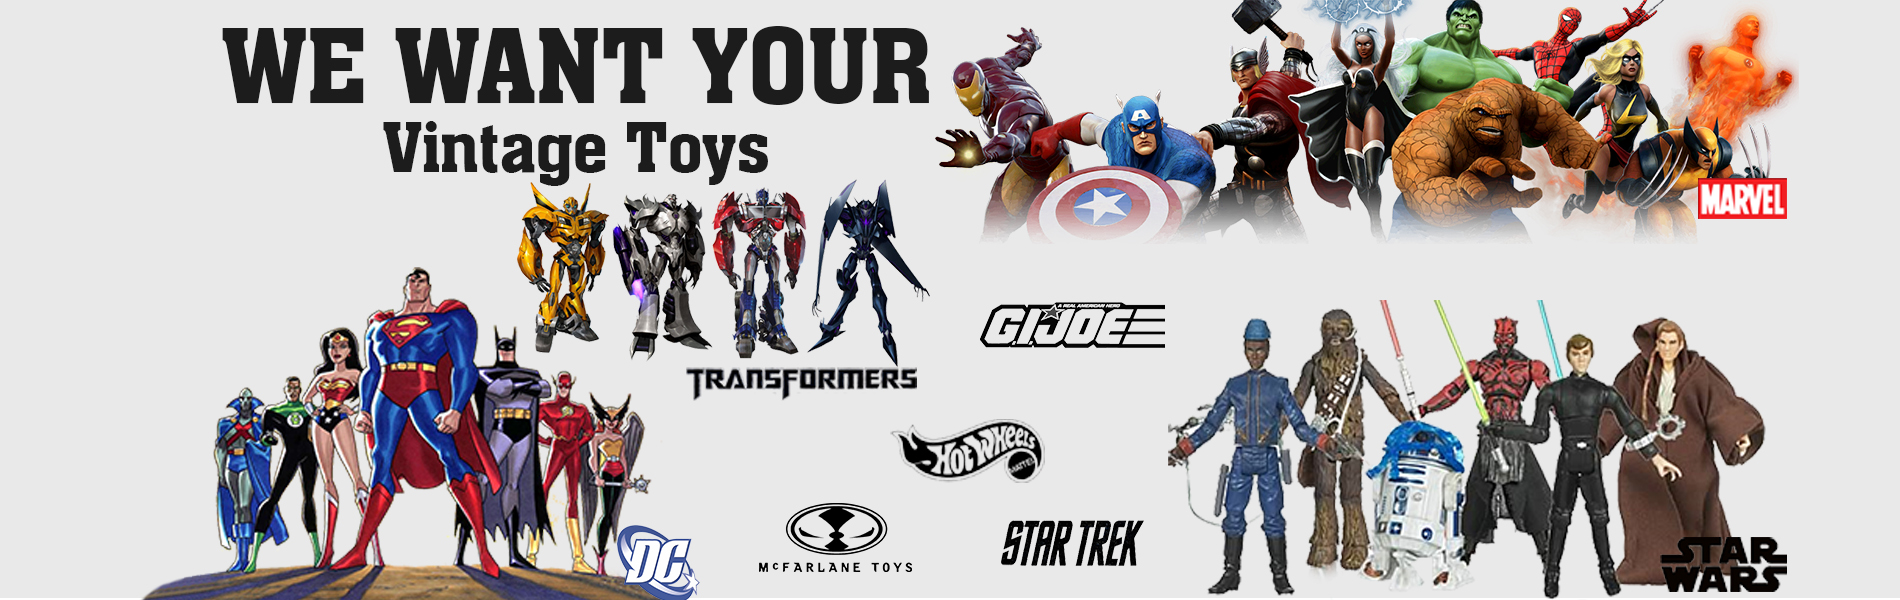 We Want Your Vintage Toys